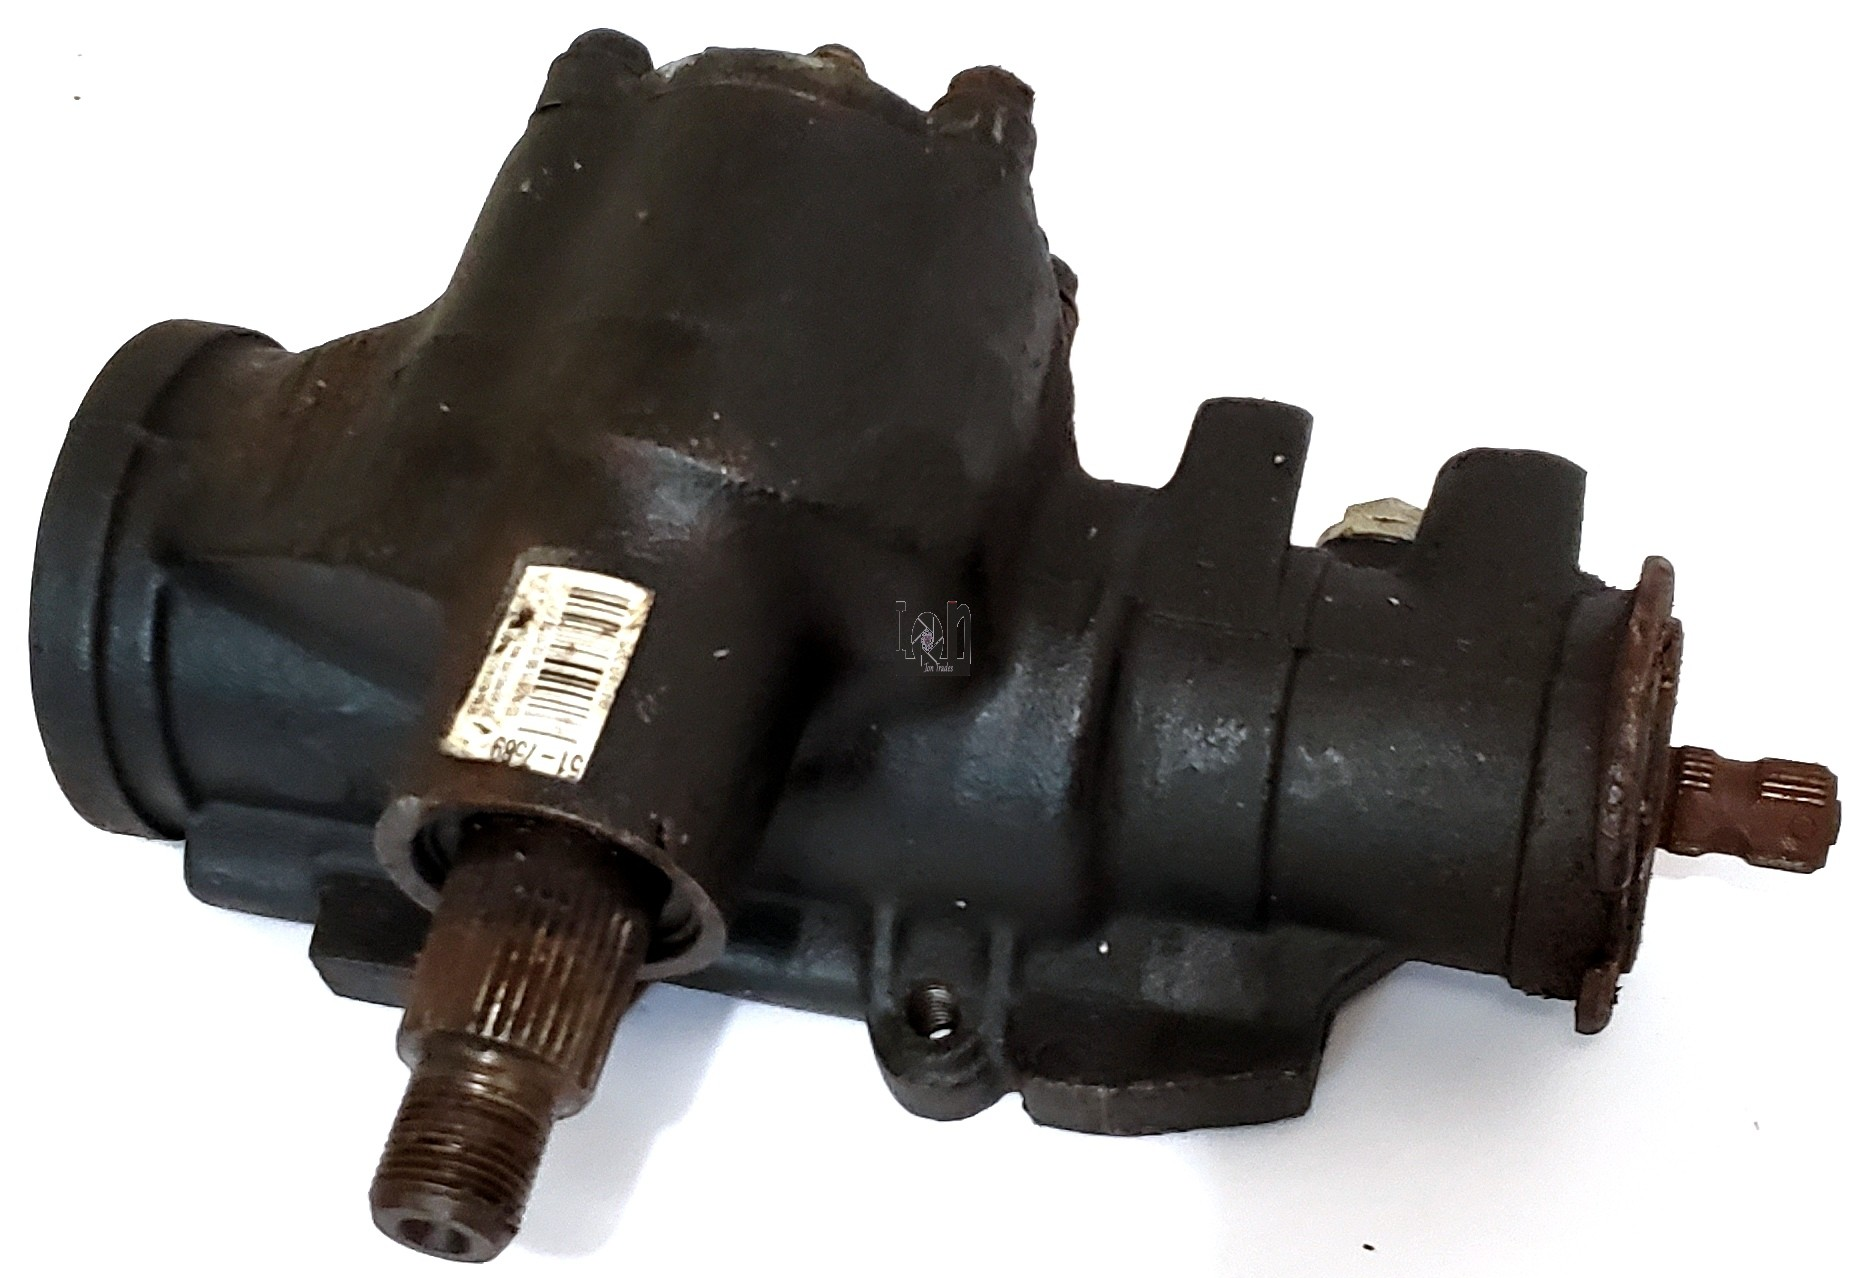 Used Power Steering Gearbox fits 1996 GMC GM Astro Safari